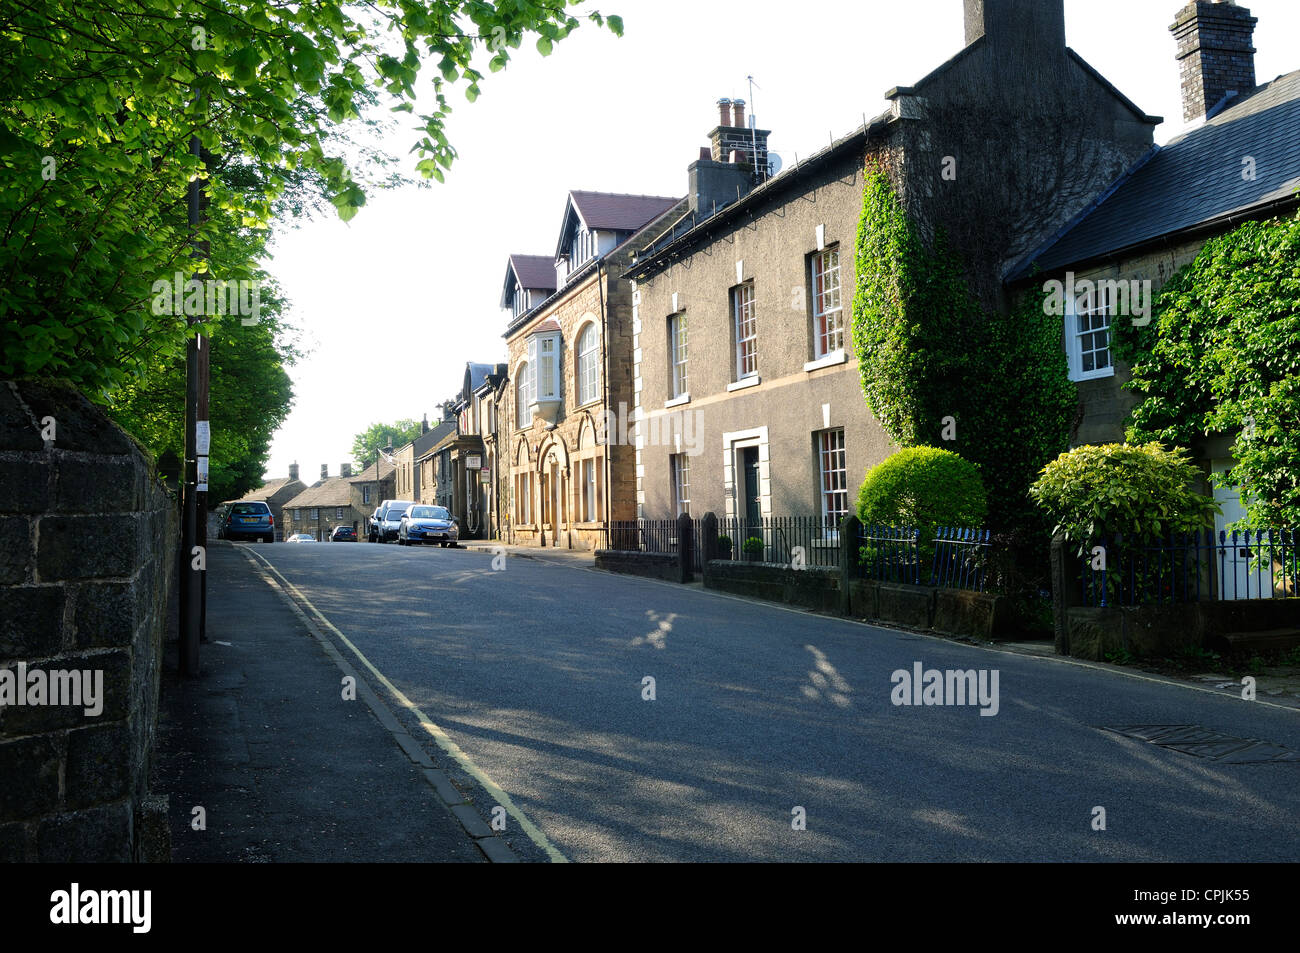 Eyam Plague Village Derbyshire England.Main Street. - Stock Image